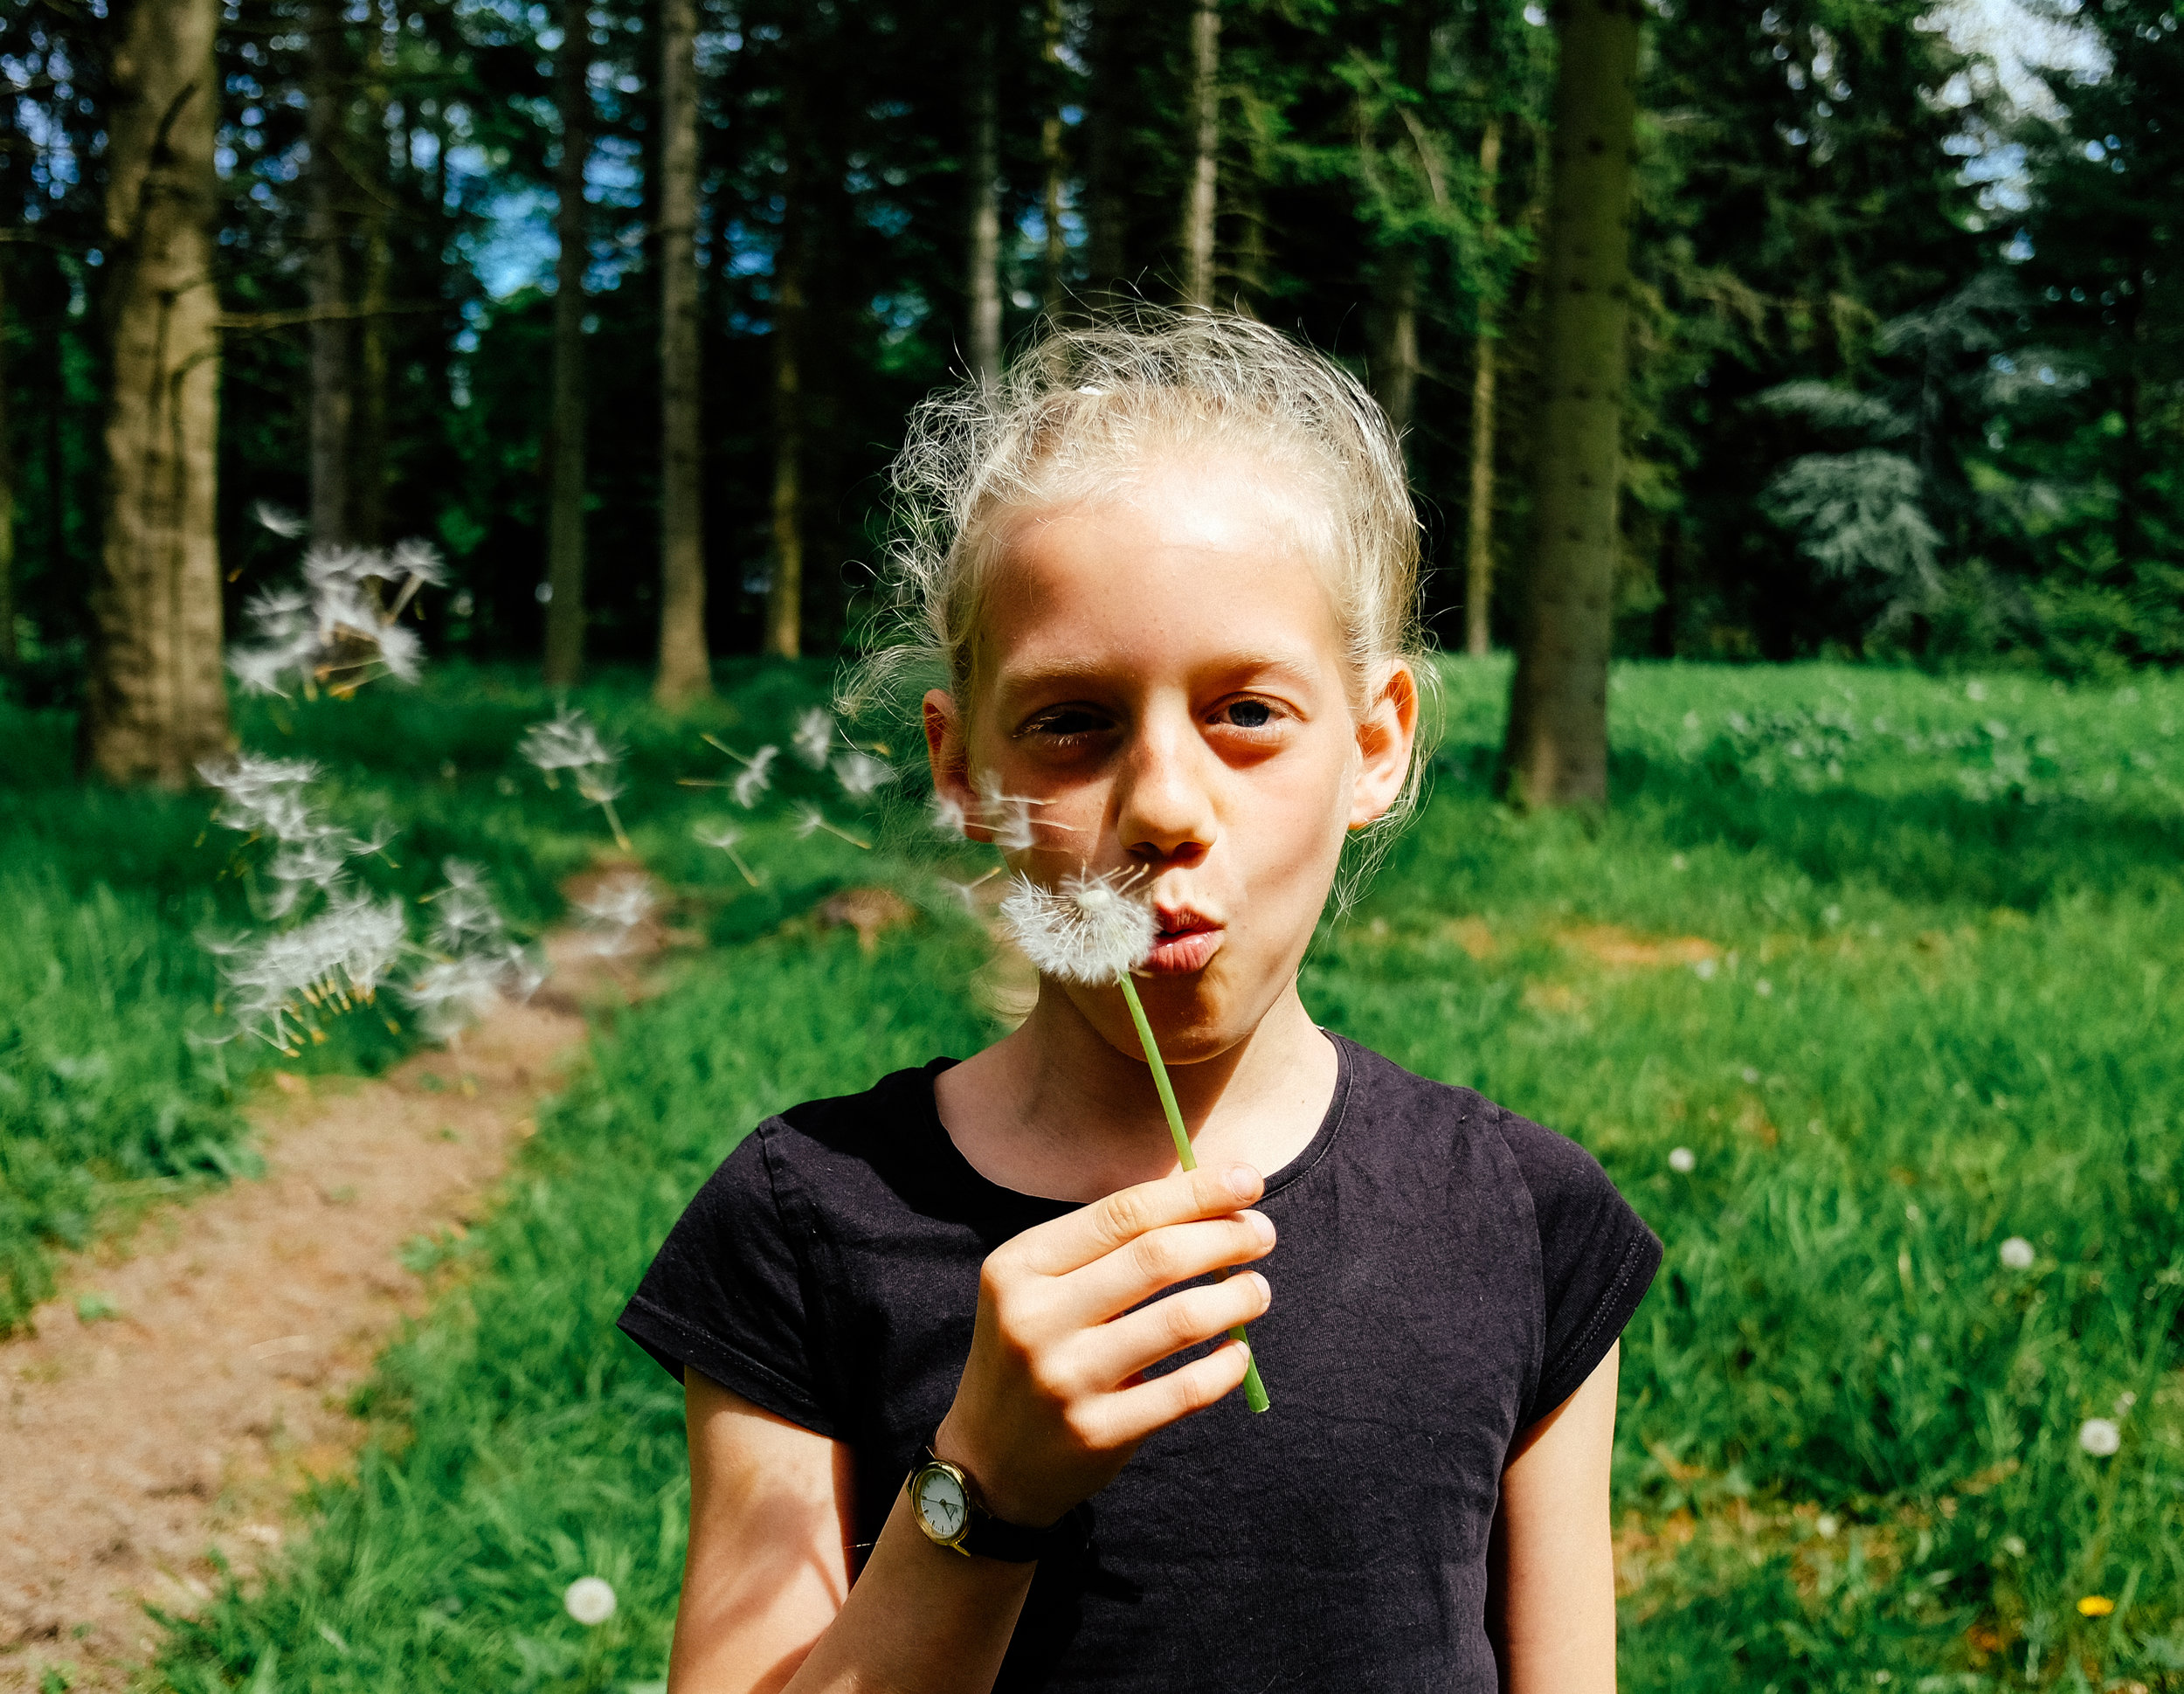 blowing dandelion seeds in nature while on a family vacation